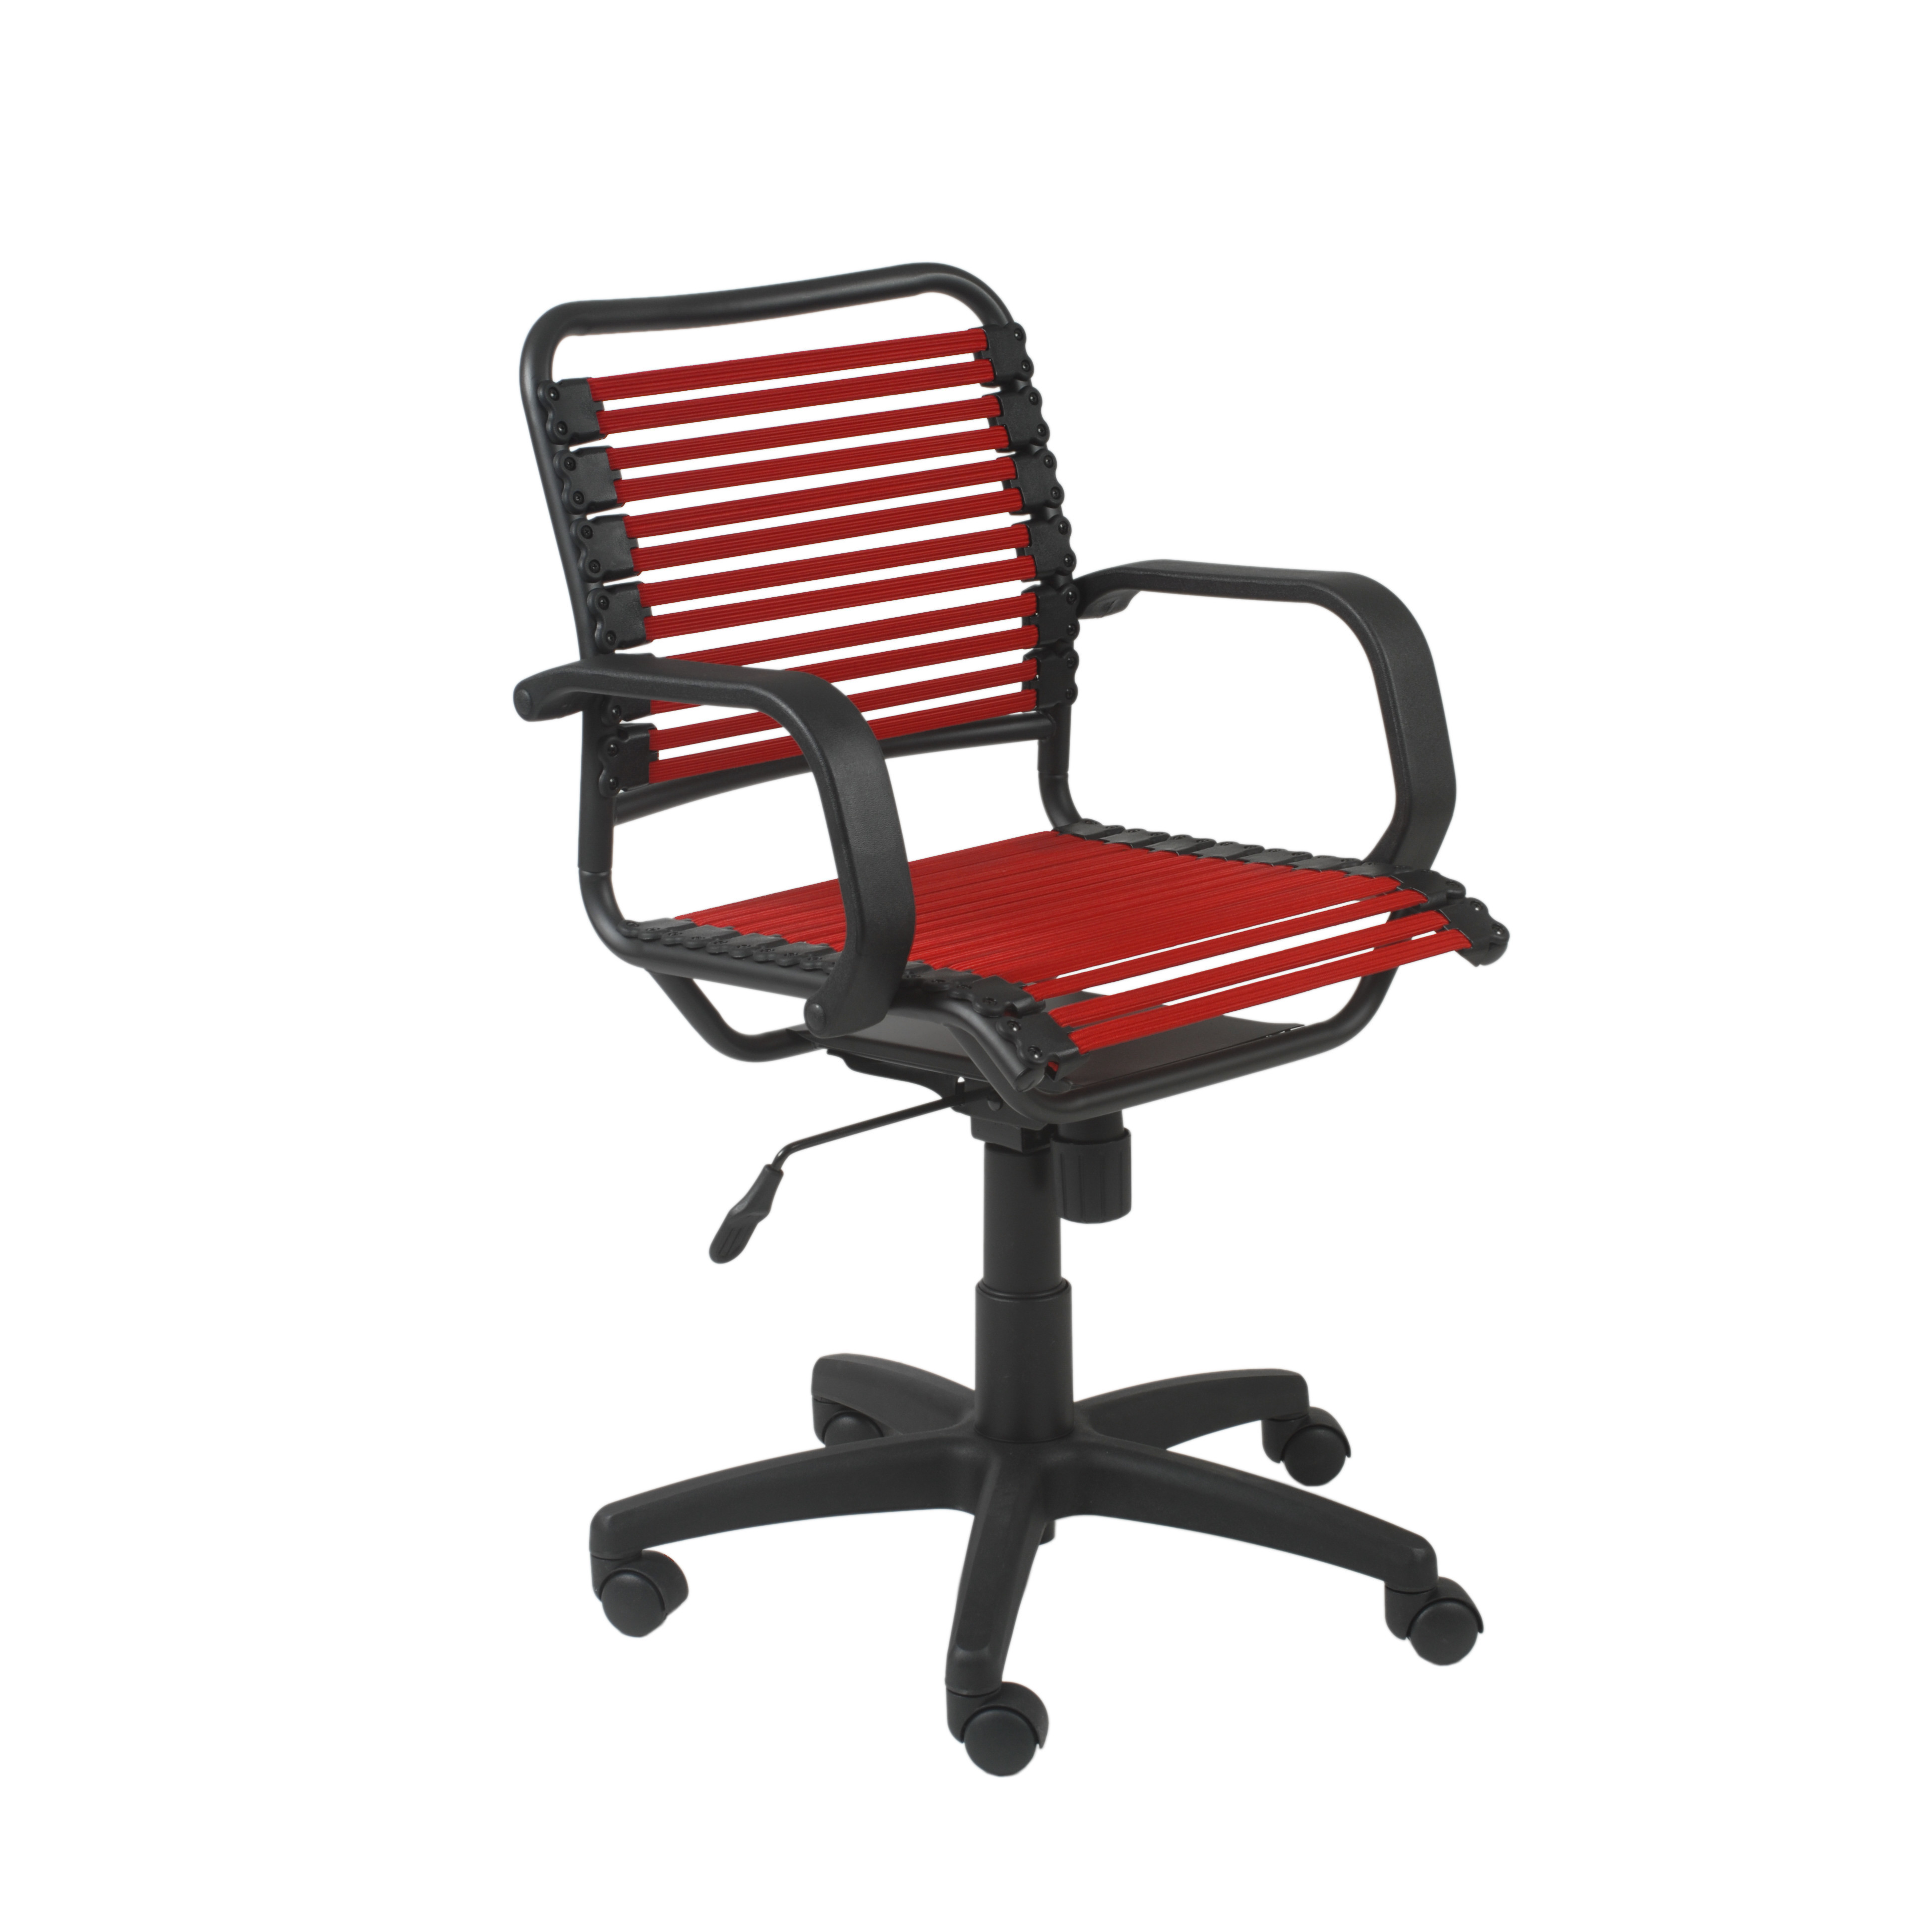 Best ideas about Bungee Office Chair . Save or Pin Eurostyle Bungie Bungee Desk Chair & Reviews Now.